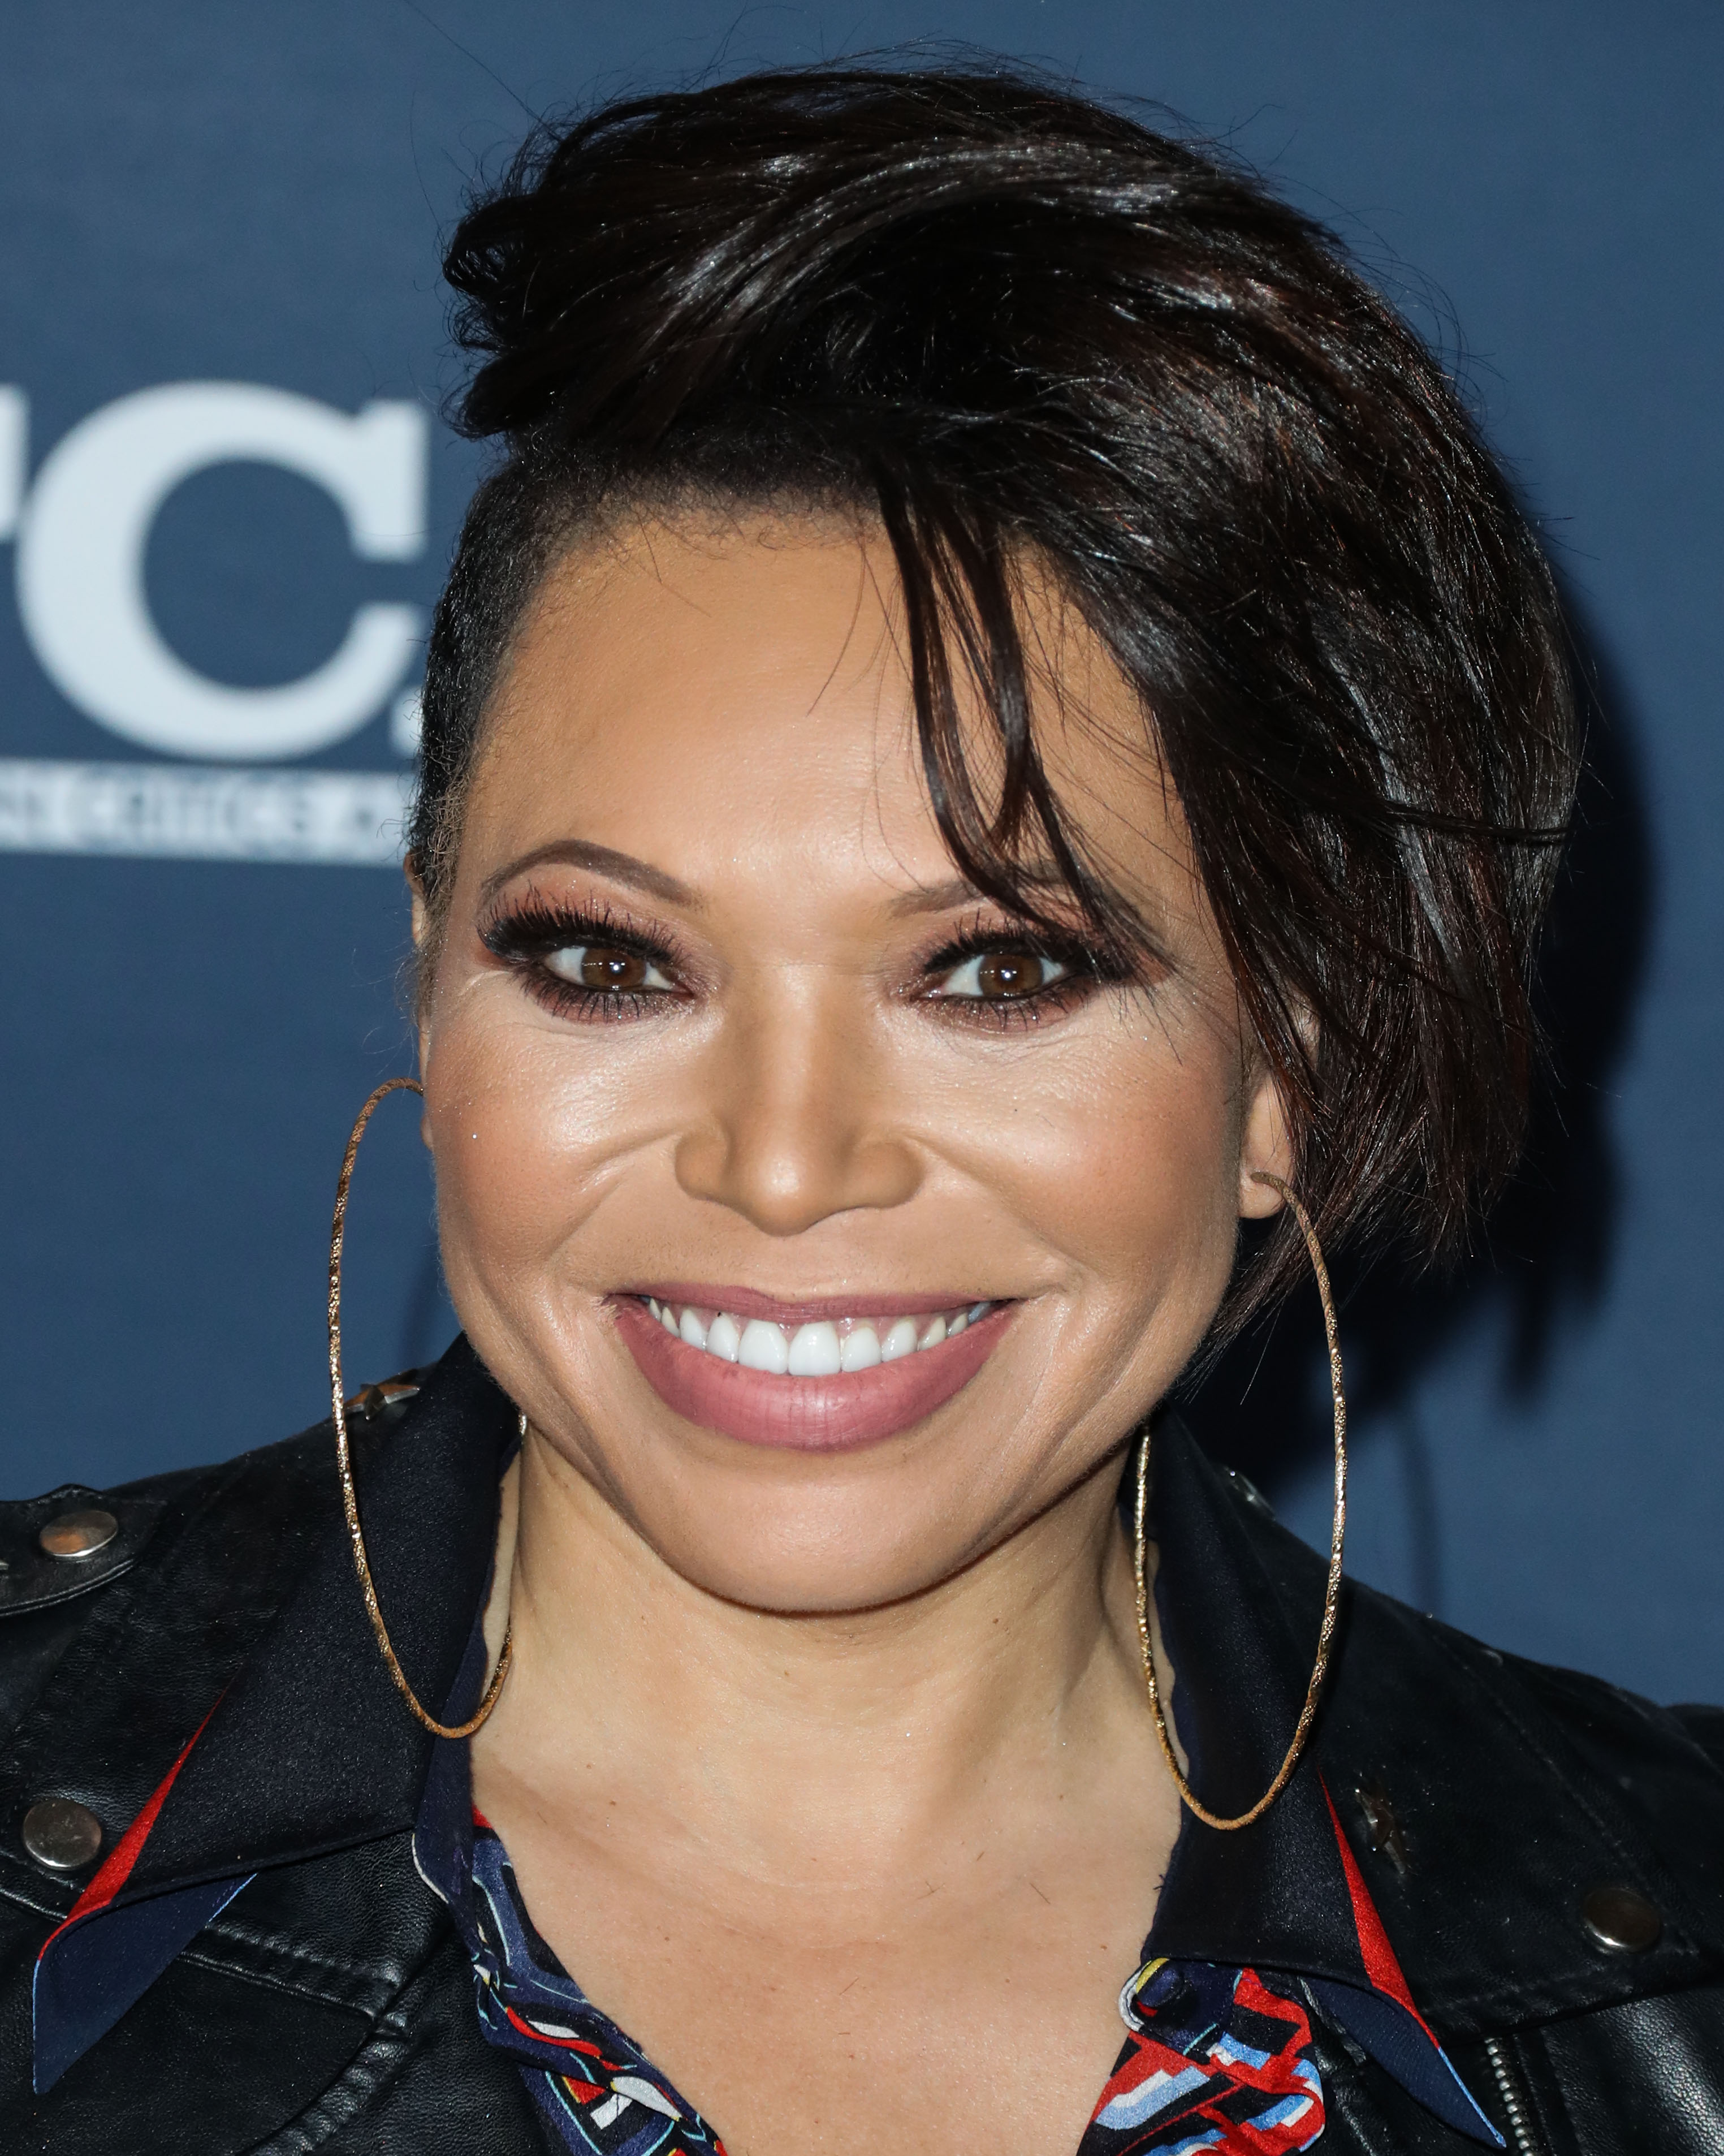 Tisha Campbell arrives at the FOX Winter TCA 2020 All-Star Party held at The Langham Huntington Hotel on January 7, 2020 in Pasadena, Los Angeles, California, United States.